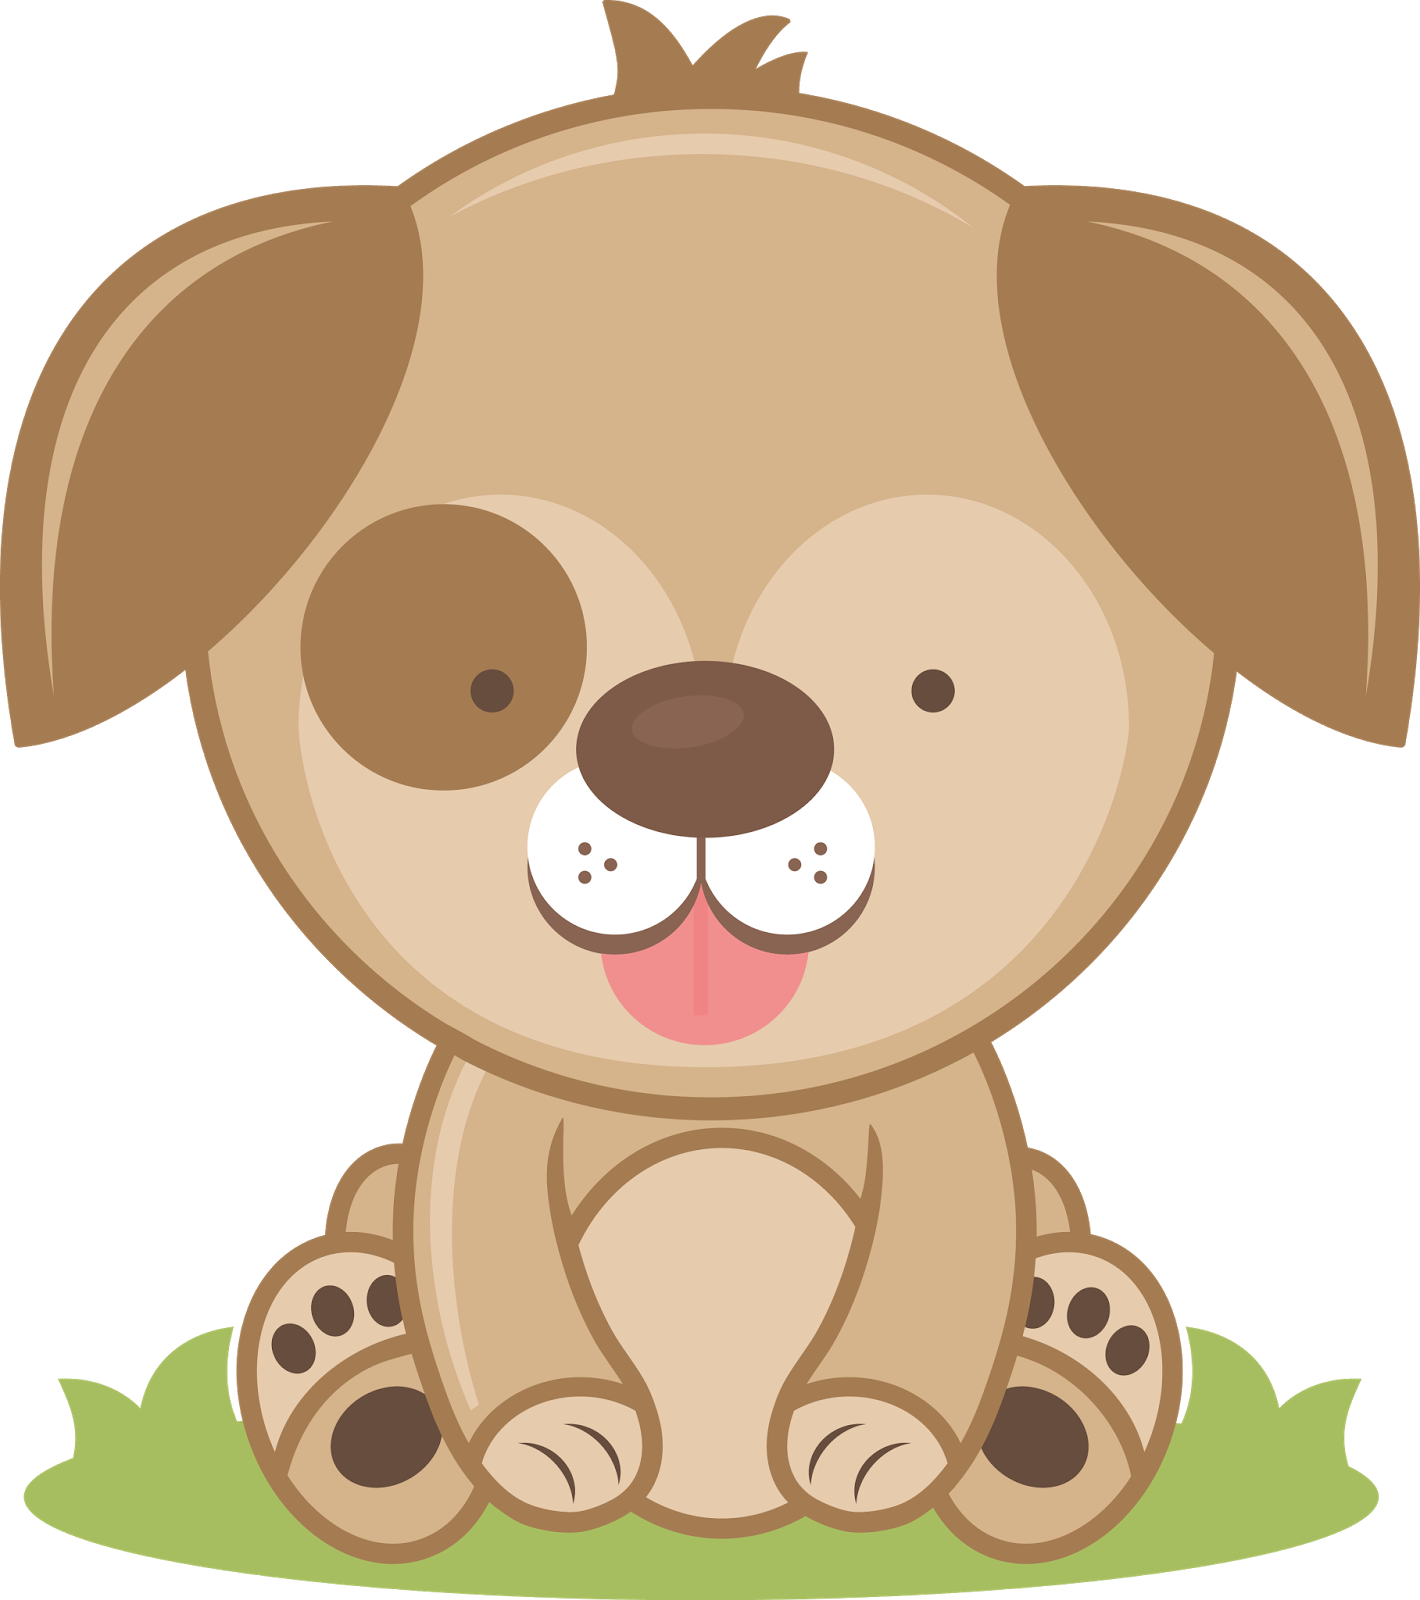 Confused dog clipart svg black and white stock Puppy Clipart - clipart svg black and white stock